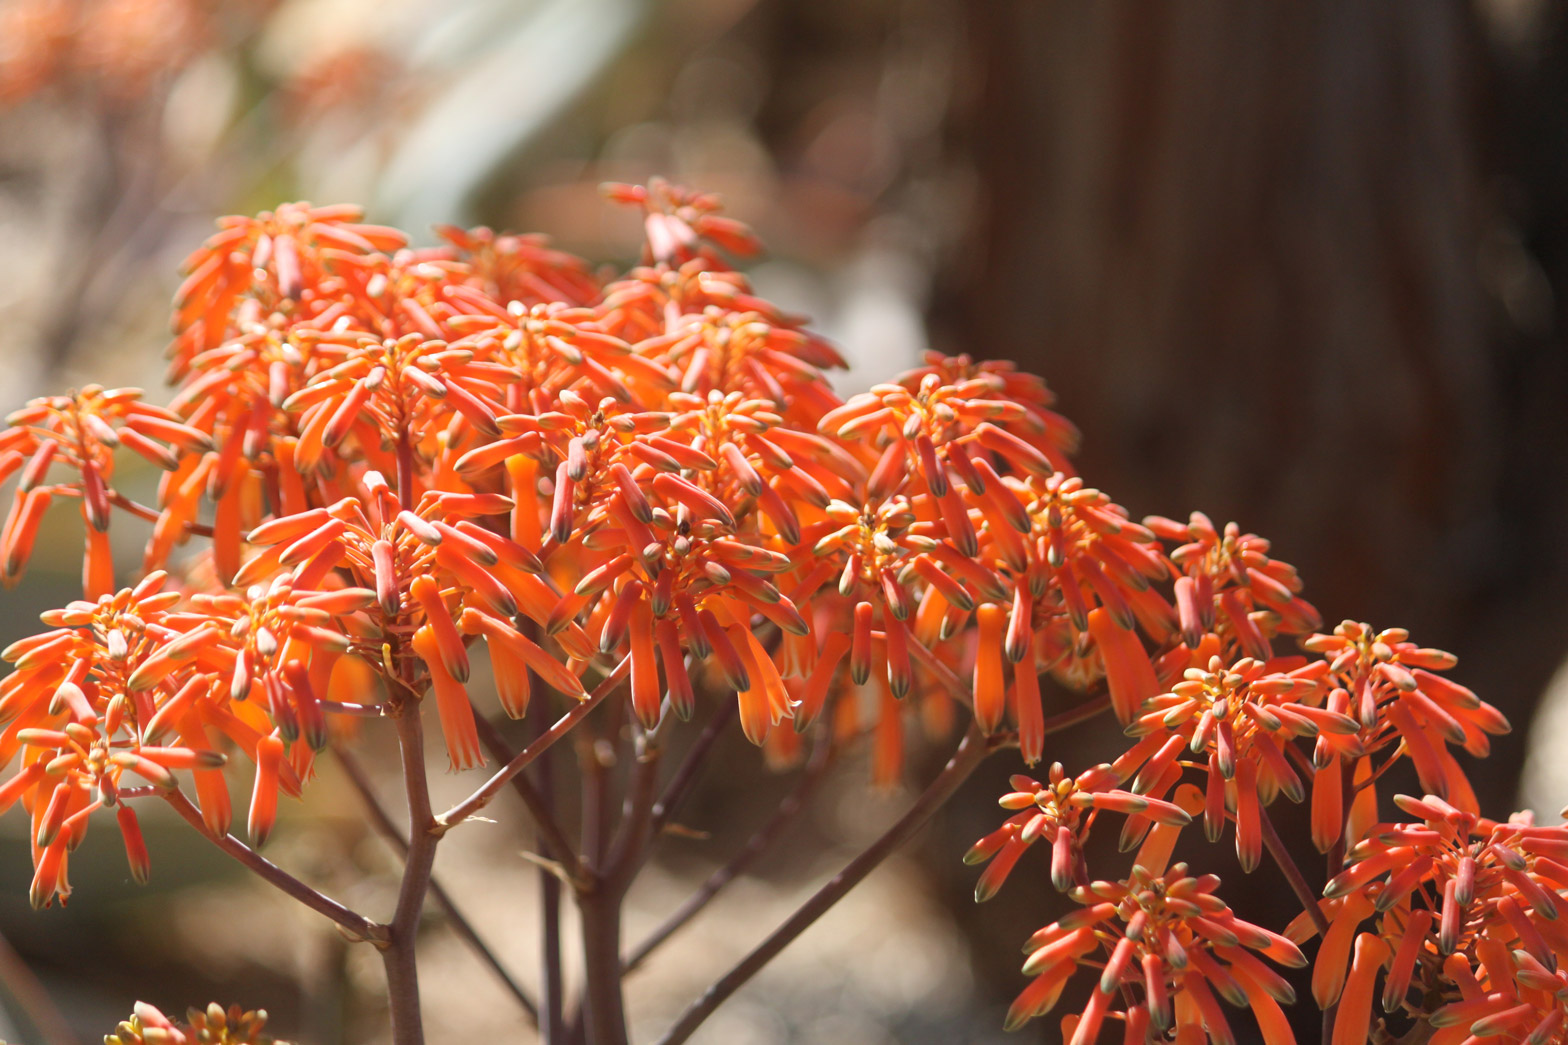 A close-up of brightly colored Coral Aloe flowers.